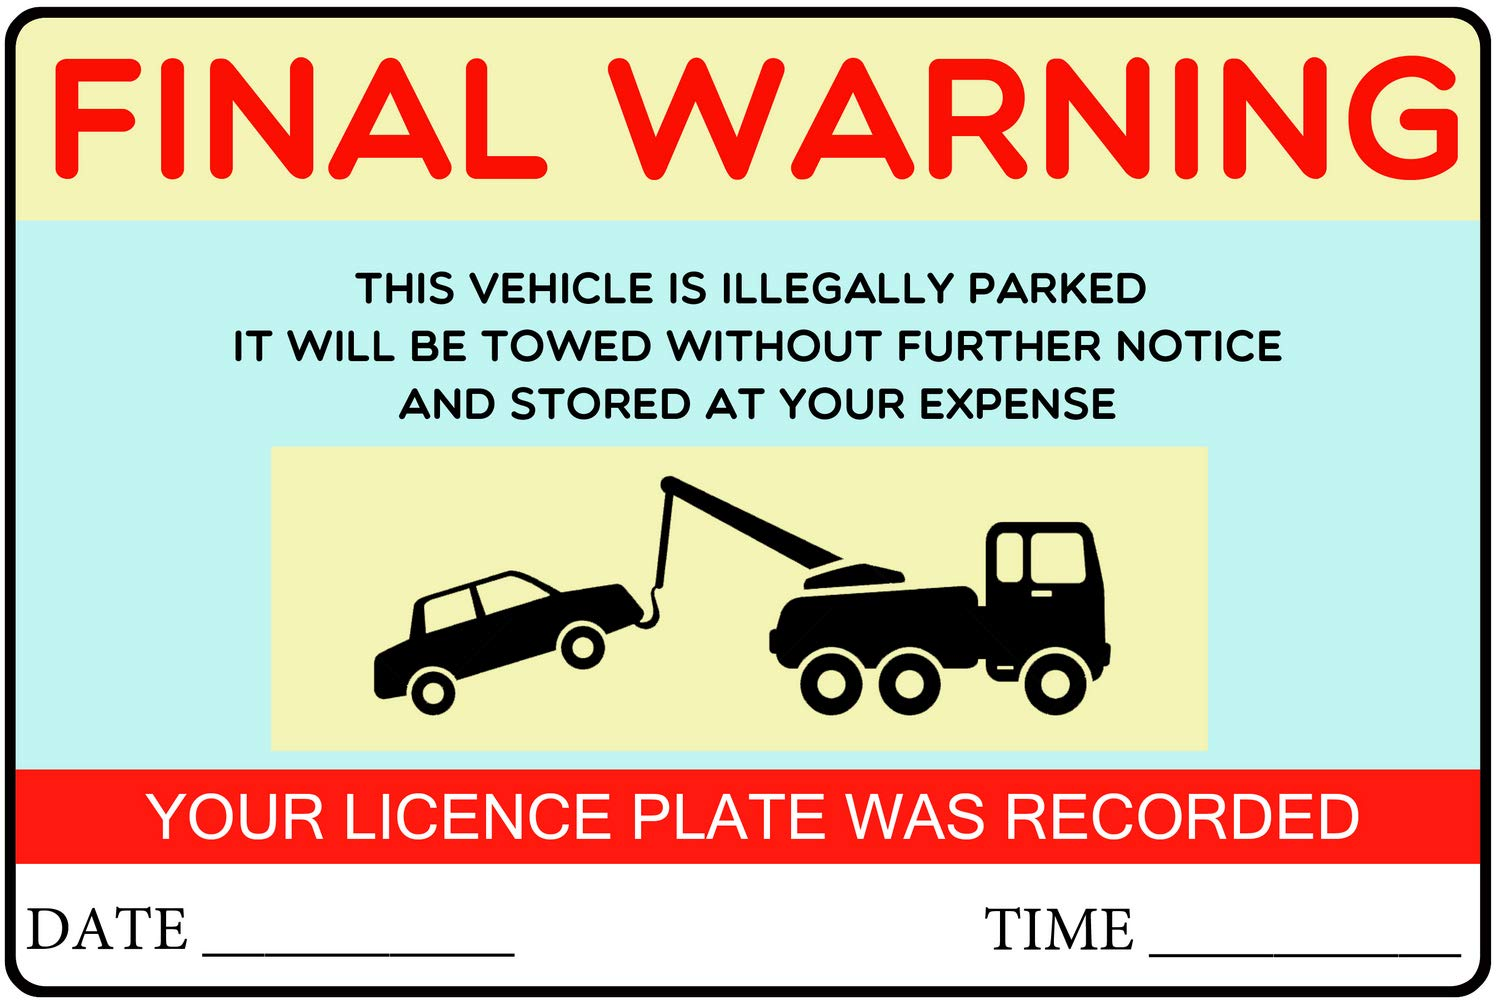 Private Parking Stickers Reserved No Permit Area Violation Warning Notice Label Sticker - 9x6 Inch - Pack of 1000, Blue by PrintValue